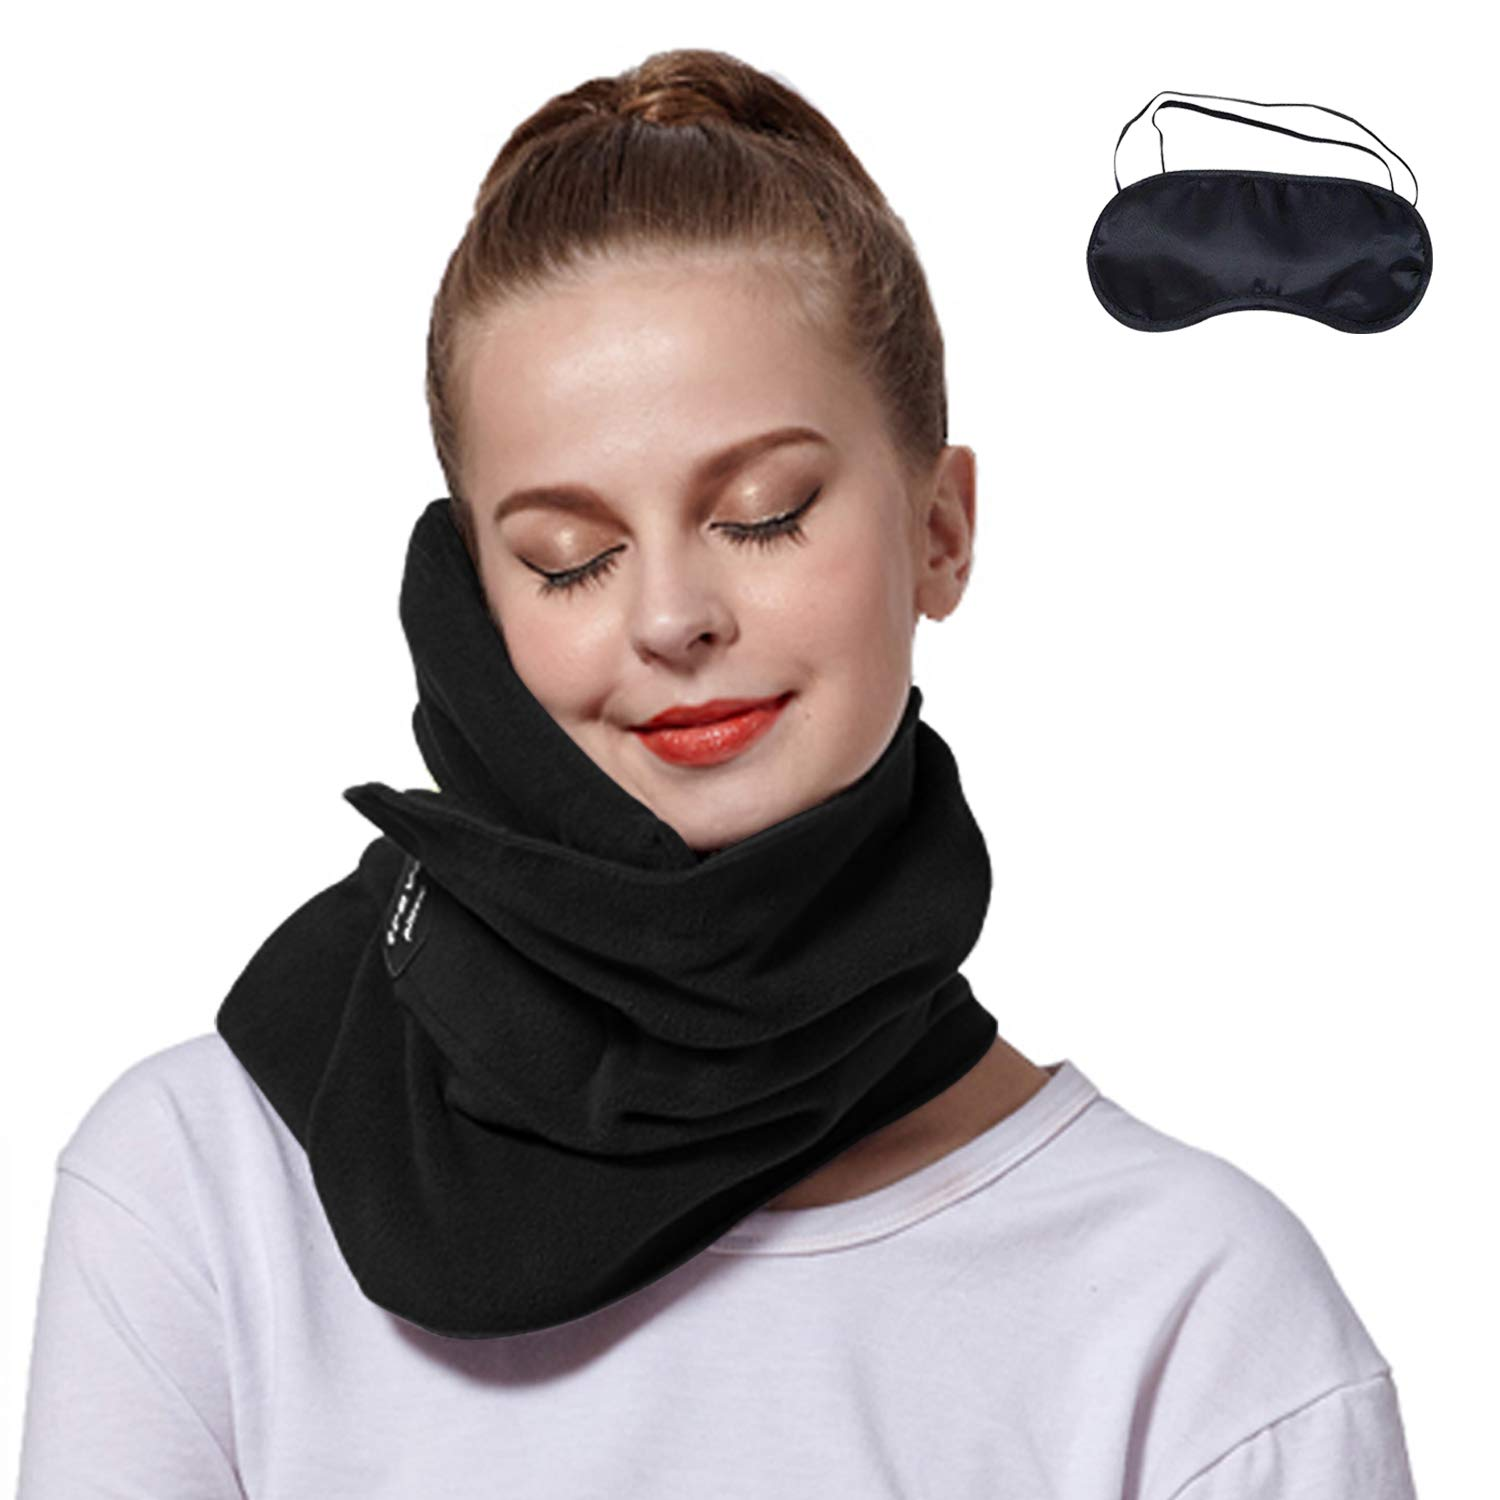 Travel Neck Pillow Plus Eye Mask, JingXiGuoJi Scientifically Proven Super Soft Neck Head Chin Support Nap Trips Pillows for Office, Planes, Air, Car, Bus, Train Long Road Trips, Machine Washable, Black